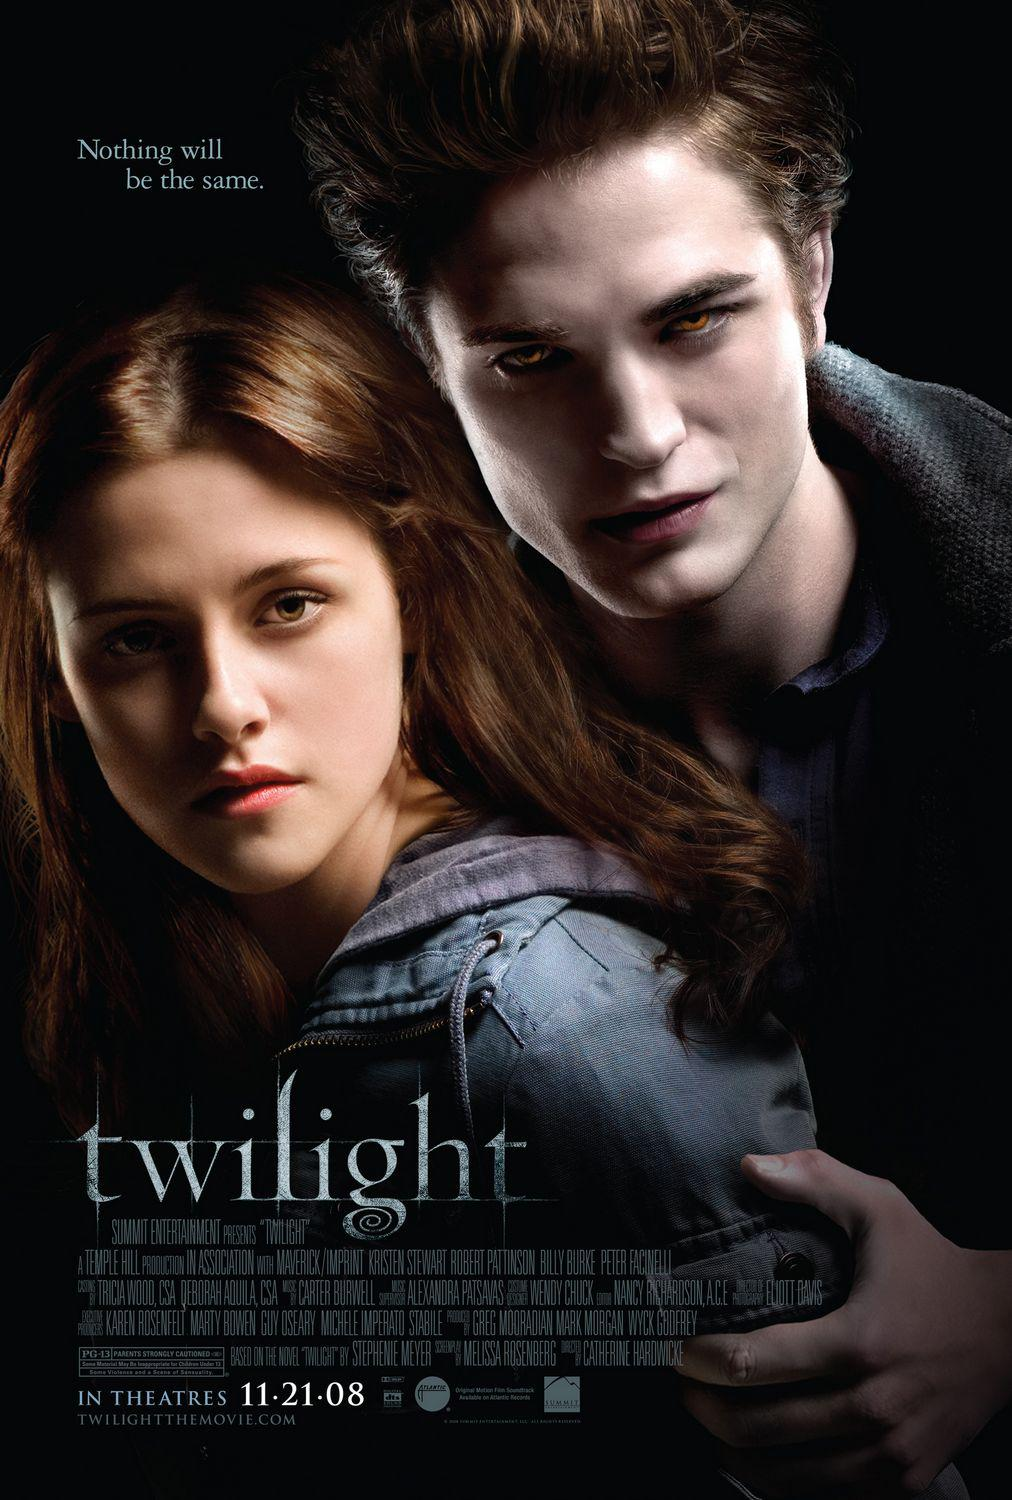 Film - Twilight